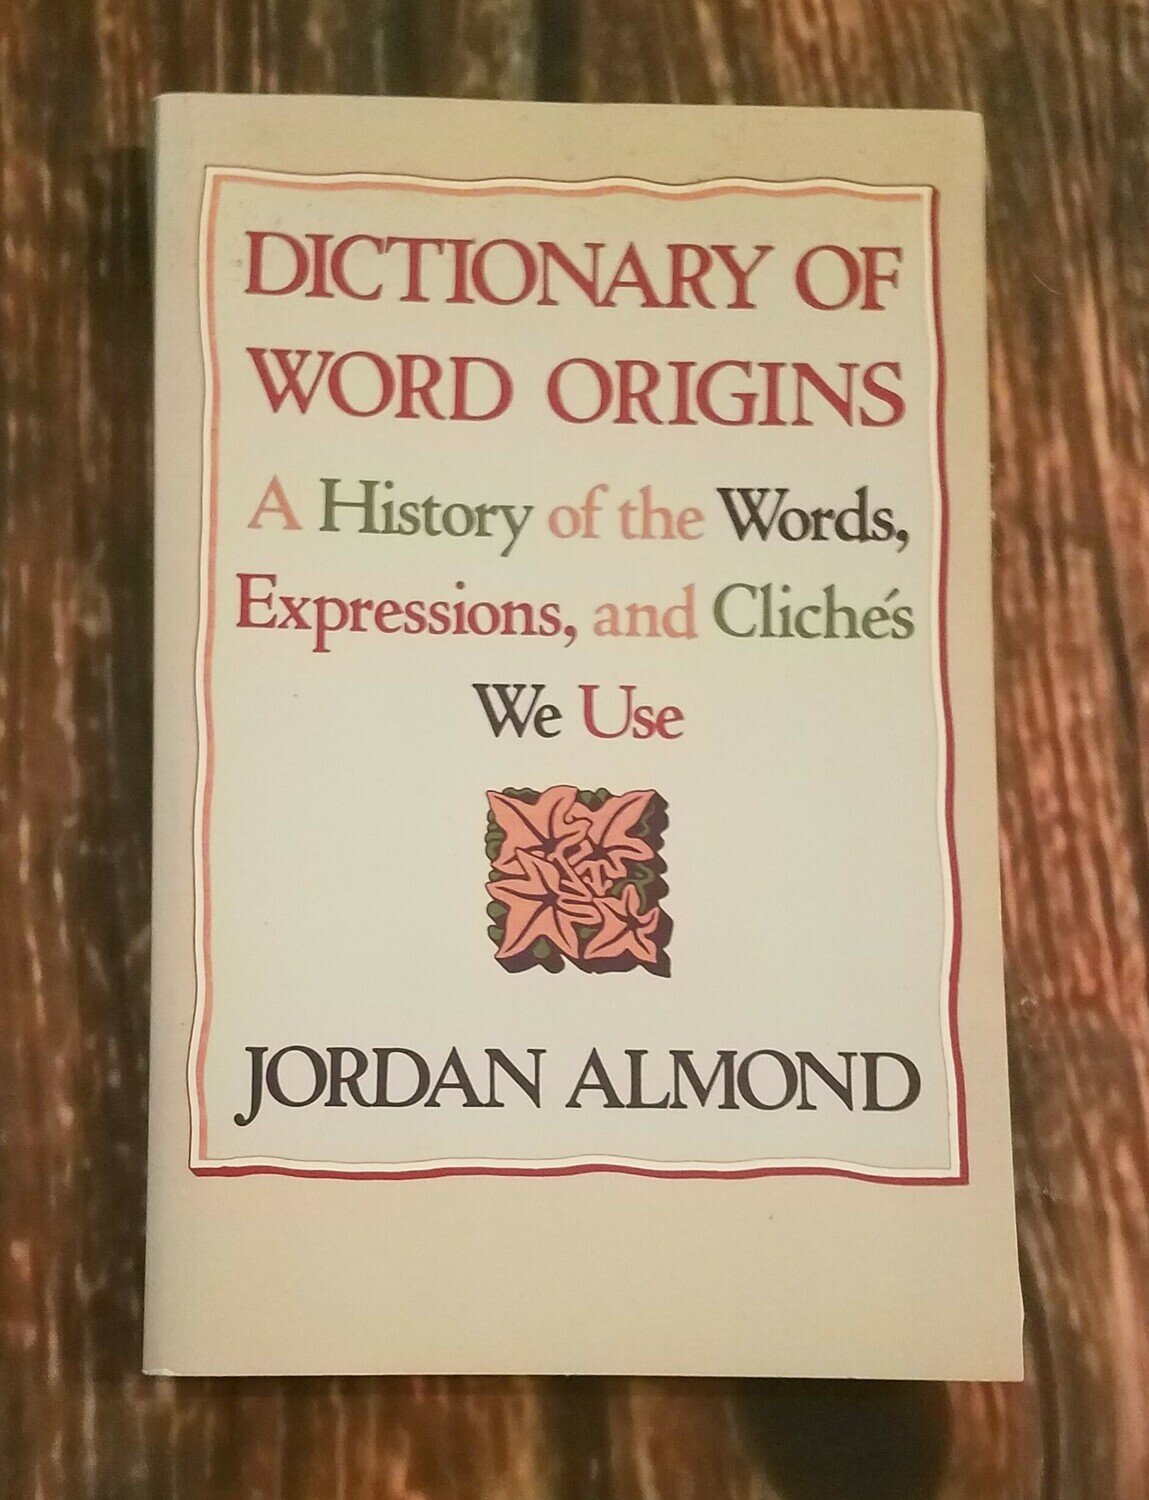 Dictionary of Word Origins by Jordan Almond